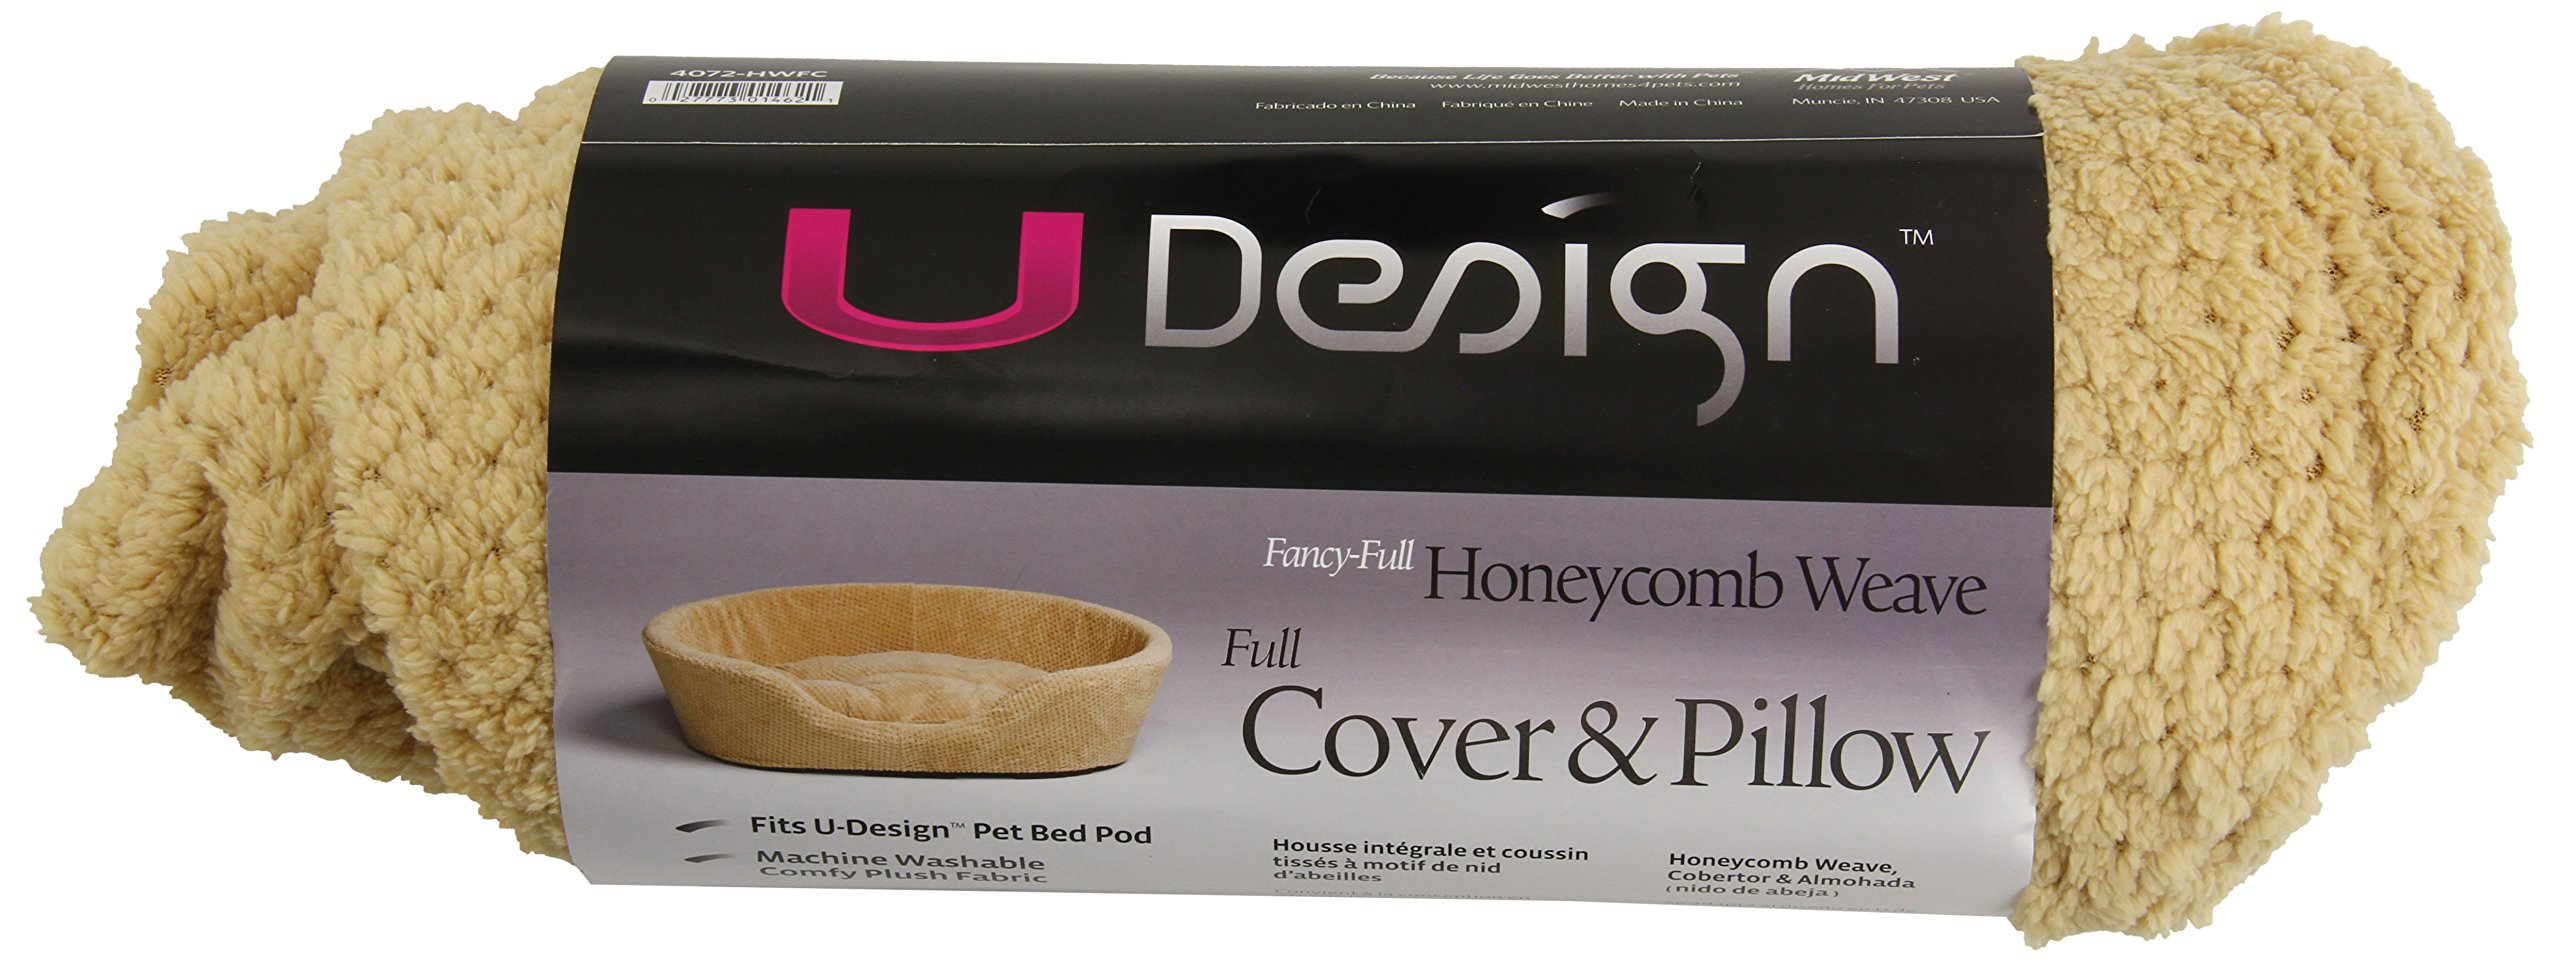 MidWest Quiet Time U-Design Small Honeycomb Weave Pattern Pod Cover and Pet Bed Pillow 23'' L x 16'' W x 9.5'' H